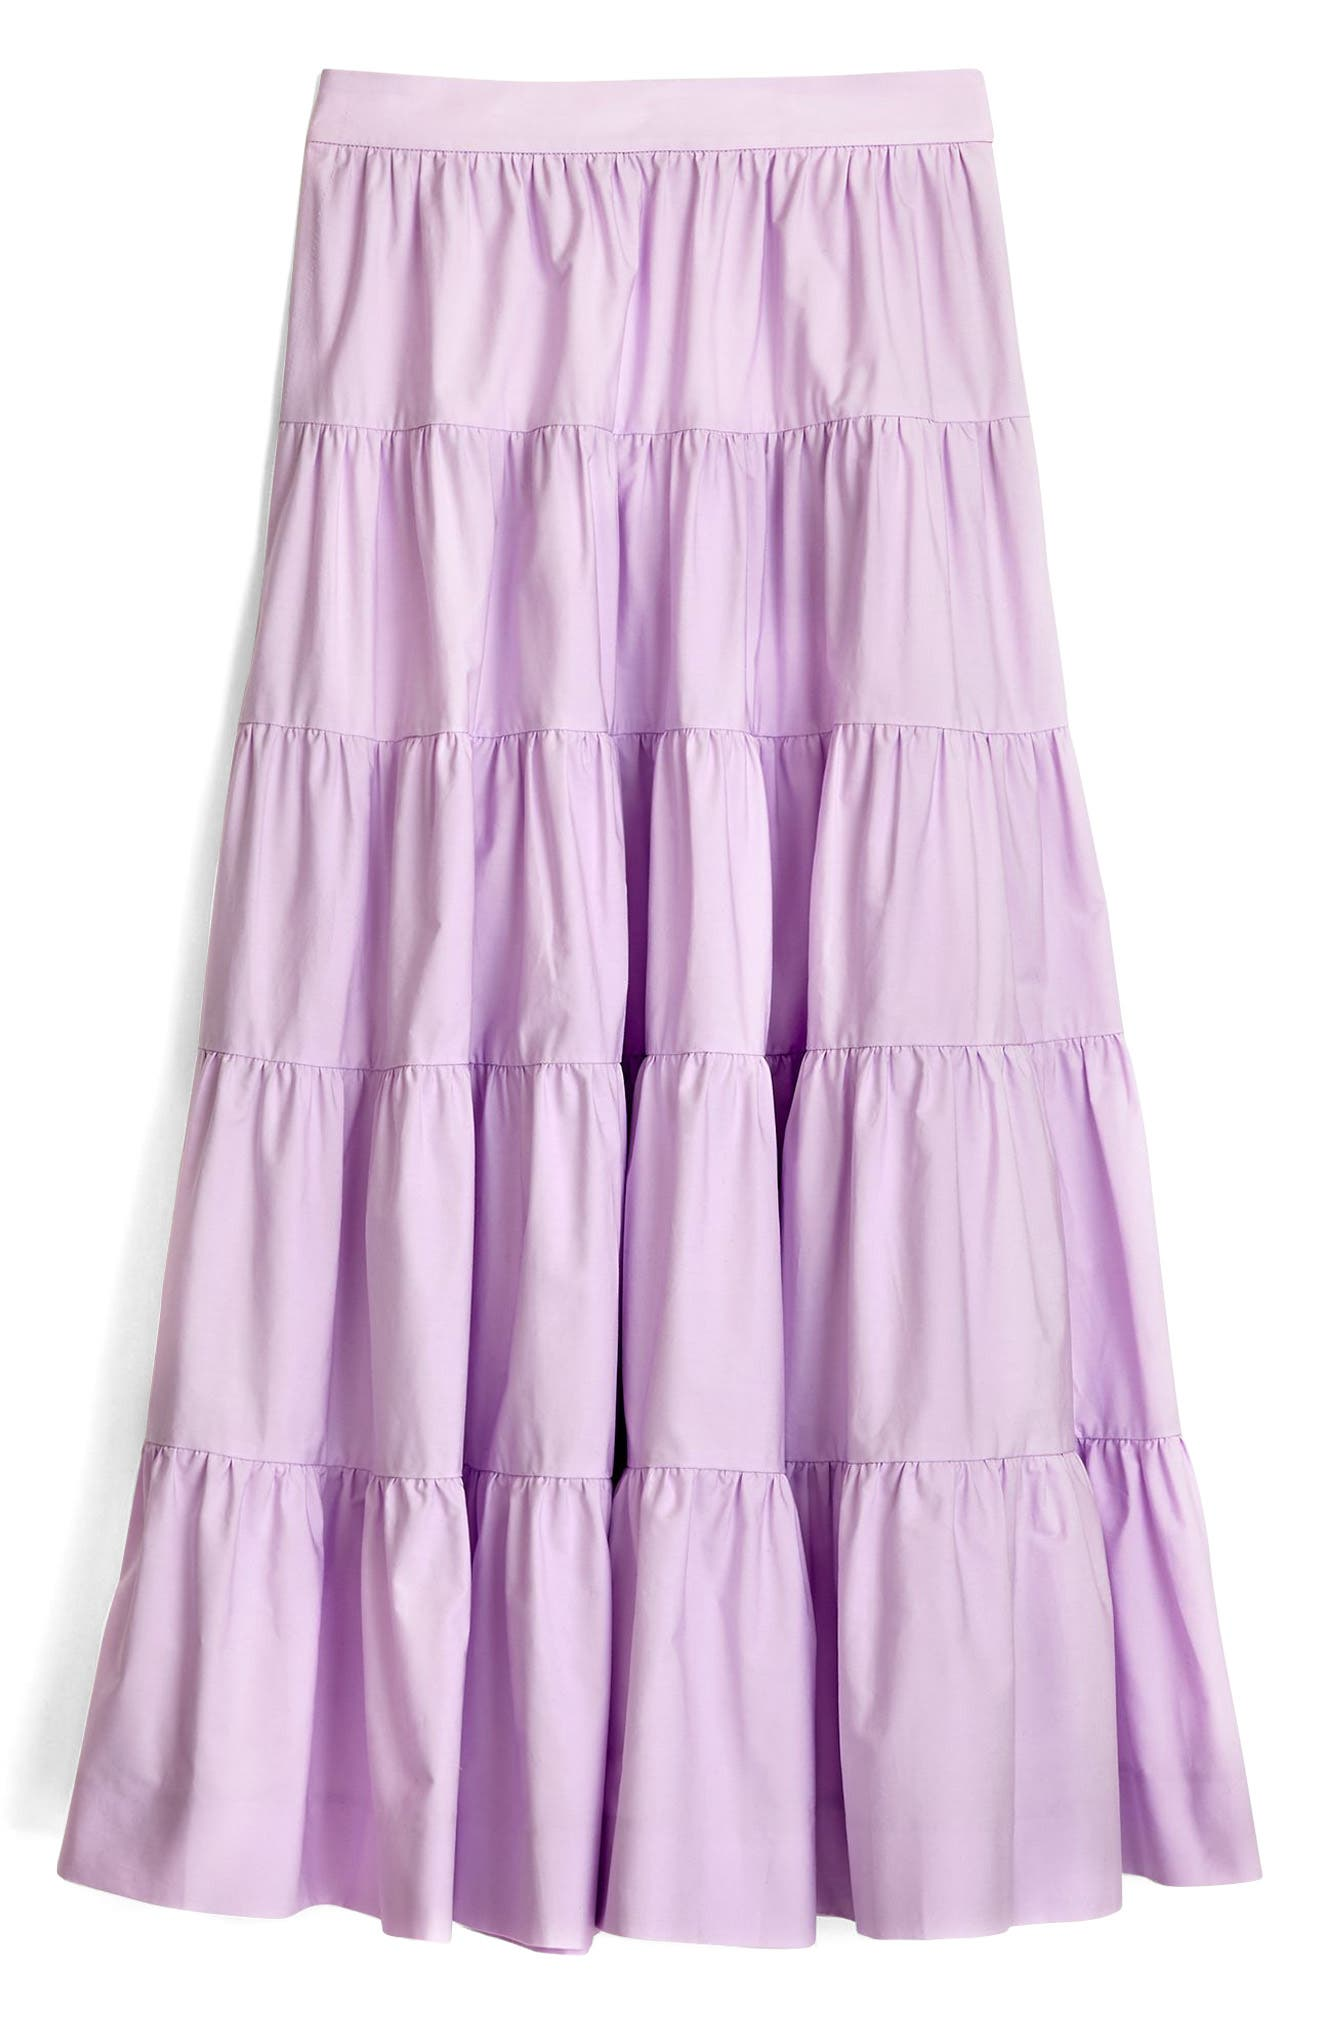 J.Crew French Creek Tired Cotton Poplin Midi,                             Alternate thumbnail 3, color,                             Frosty Lilac